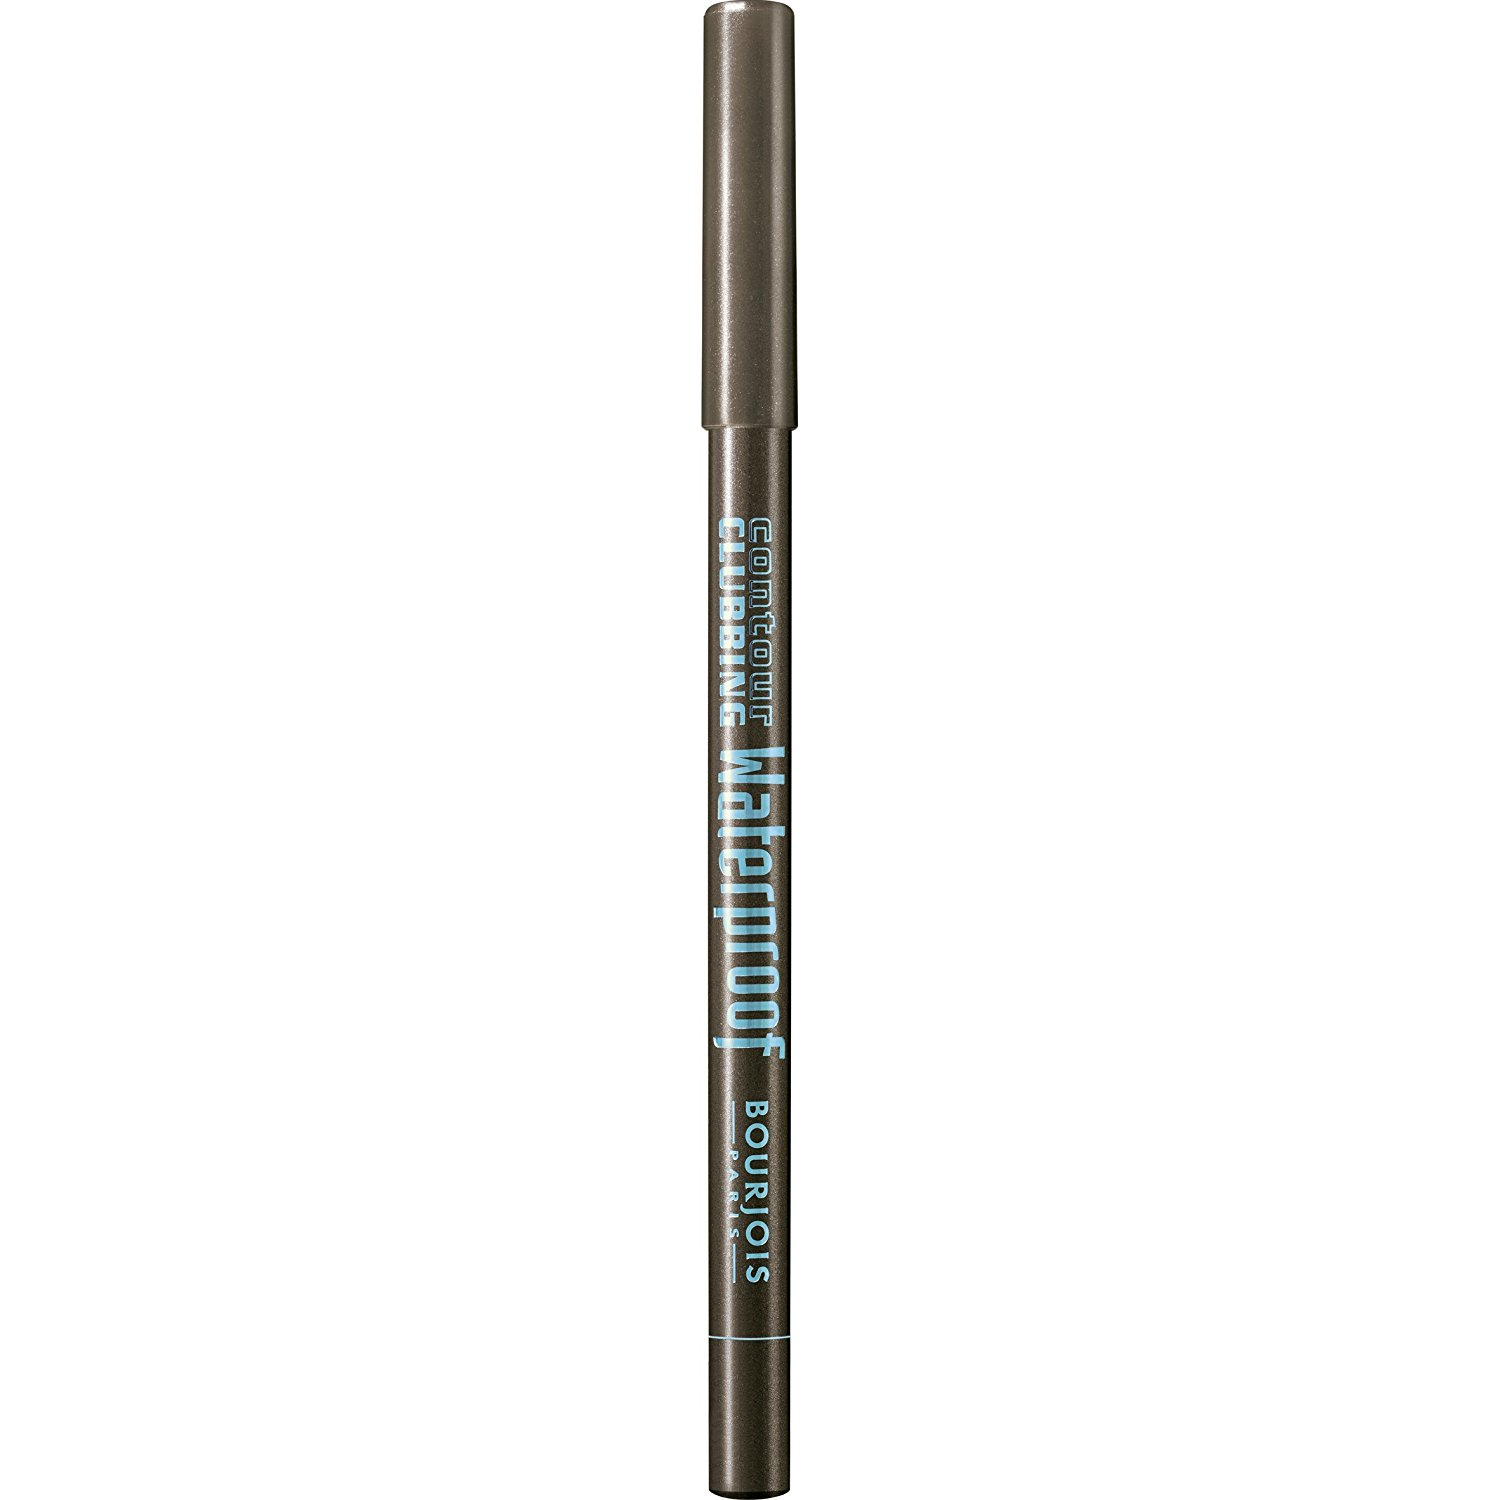 BOURJOIS CONTOUR CLUBBING WATERPROOF LAPIZ DE OJOS 057 UP AND BROWN